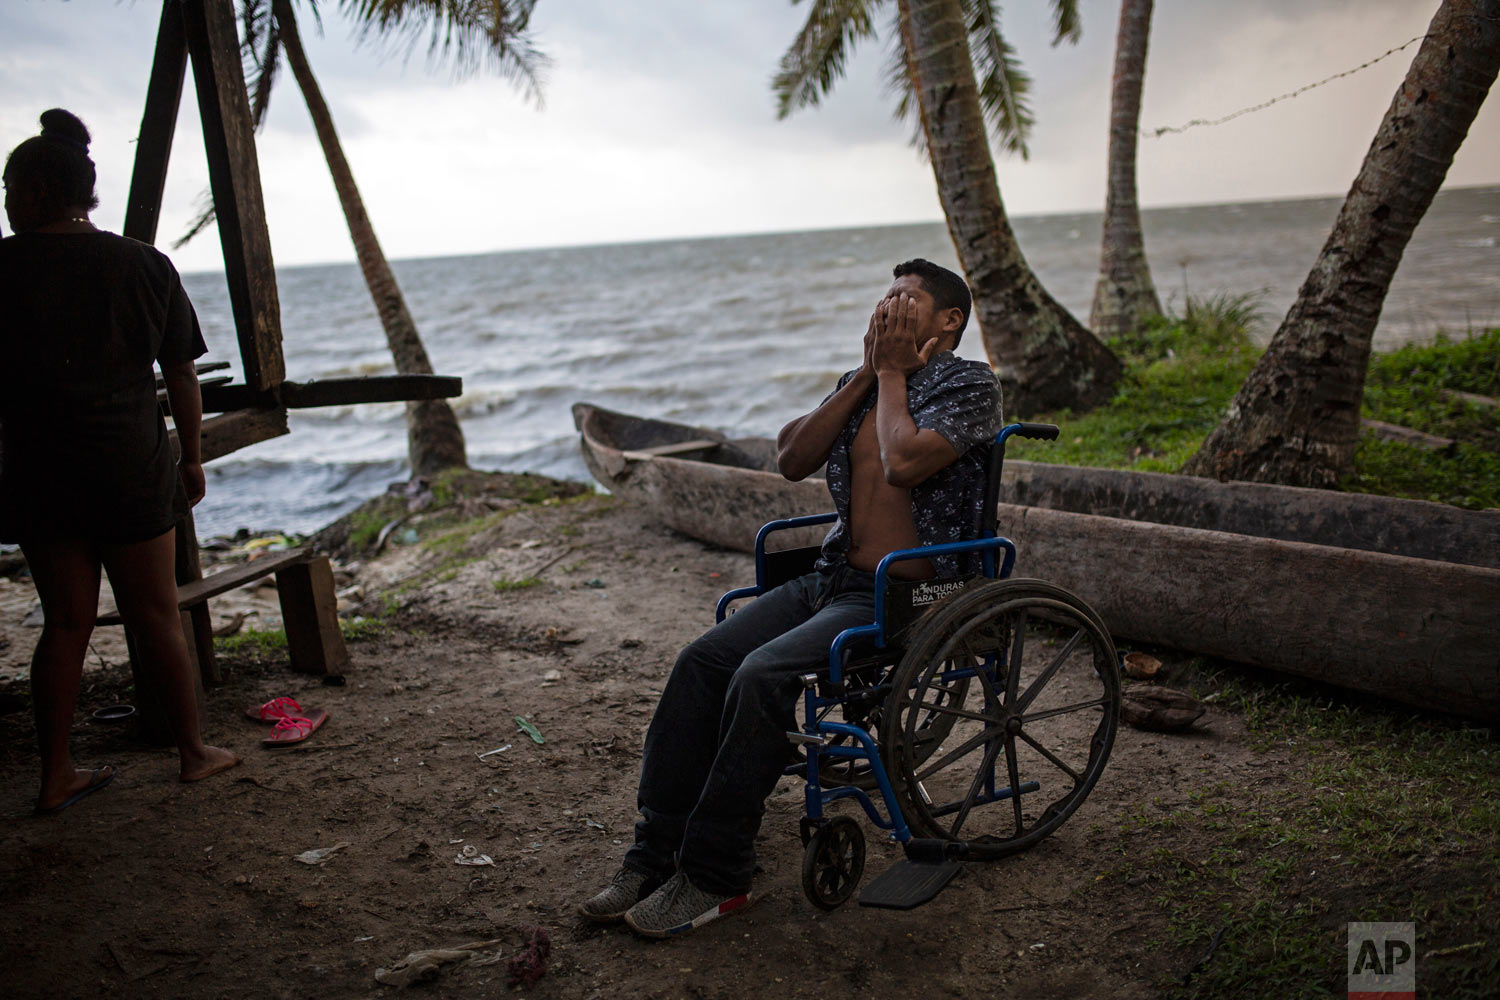 In this Jan 31, 2018 photo, 28-year-old lobster diver Charly Melendez puts his hands over his face in frustration as he comes to terms with having to rely on a wheelchair to get around, in Puerto Lempira, Honduras. (AP Photo/Rodrigo Abd)